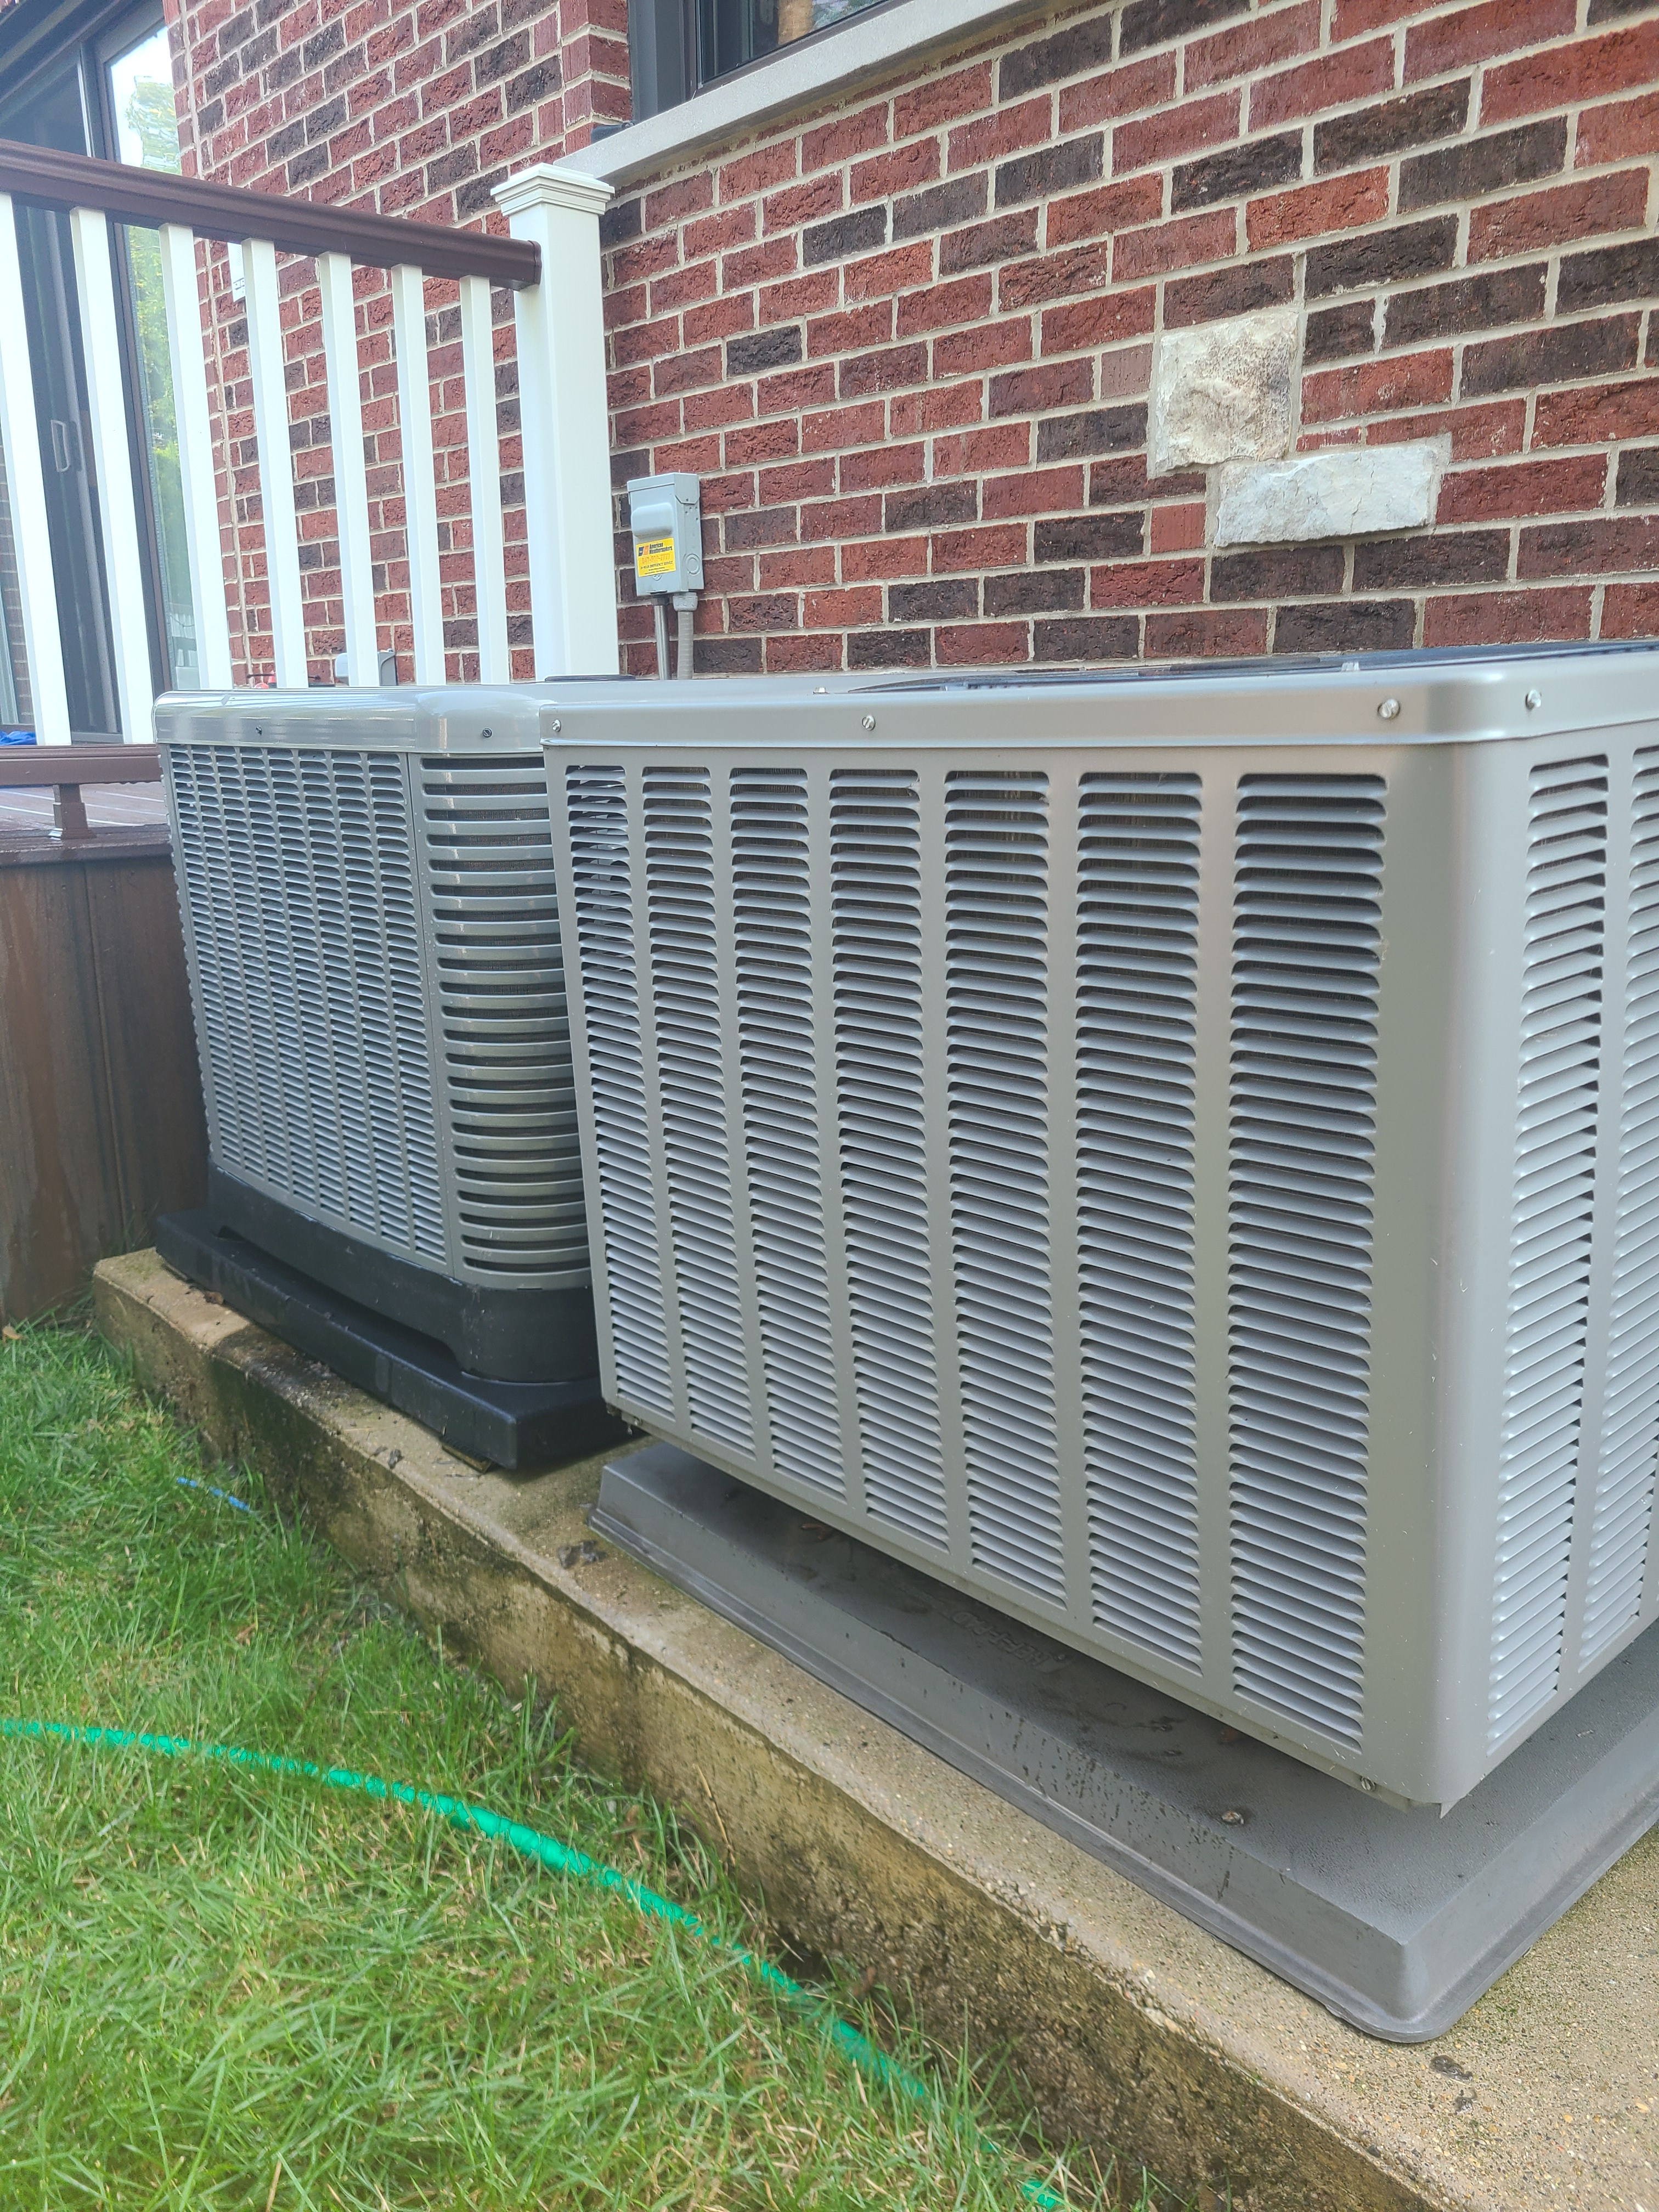 Rheem r22 Ruud r410a systems...cleaned tested repairs made